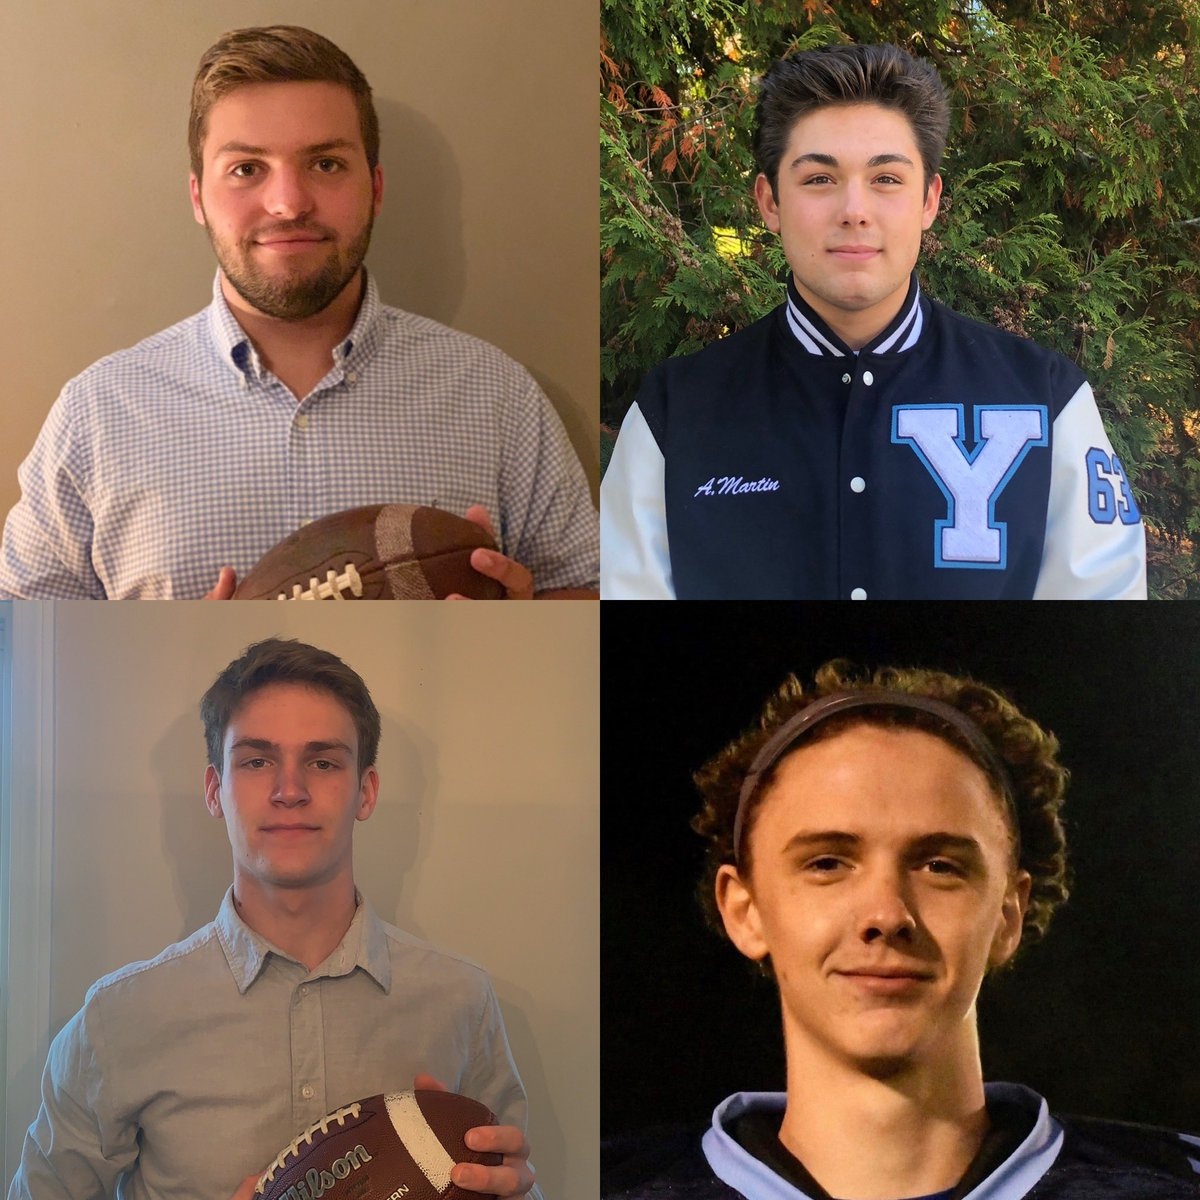 test Twitter Media - Let's celebrate the 2020 Football Captains: Aidan Martin, Connor Daley, Evan Bourgoine and Teagan Hynes! This senior class  led York to the Class C South Finals  in 2019 for the 1st time since 2014!Thank you for your leadership on and off the field! @YHSWildcats @football_york https://t.co/HZKm5aKk1B